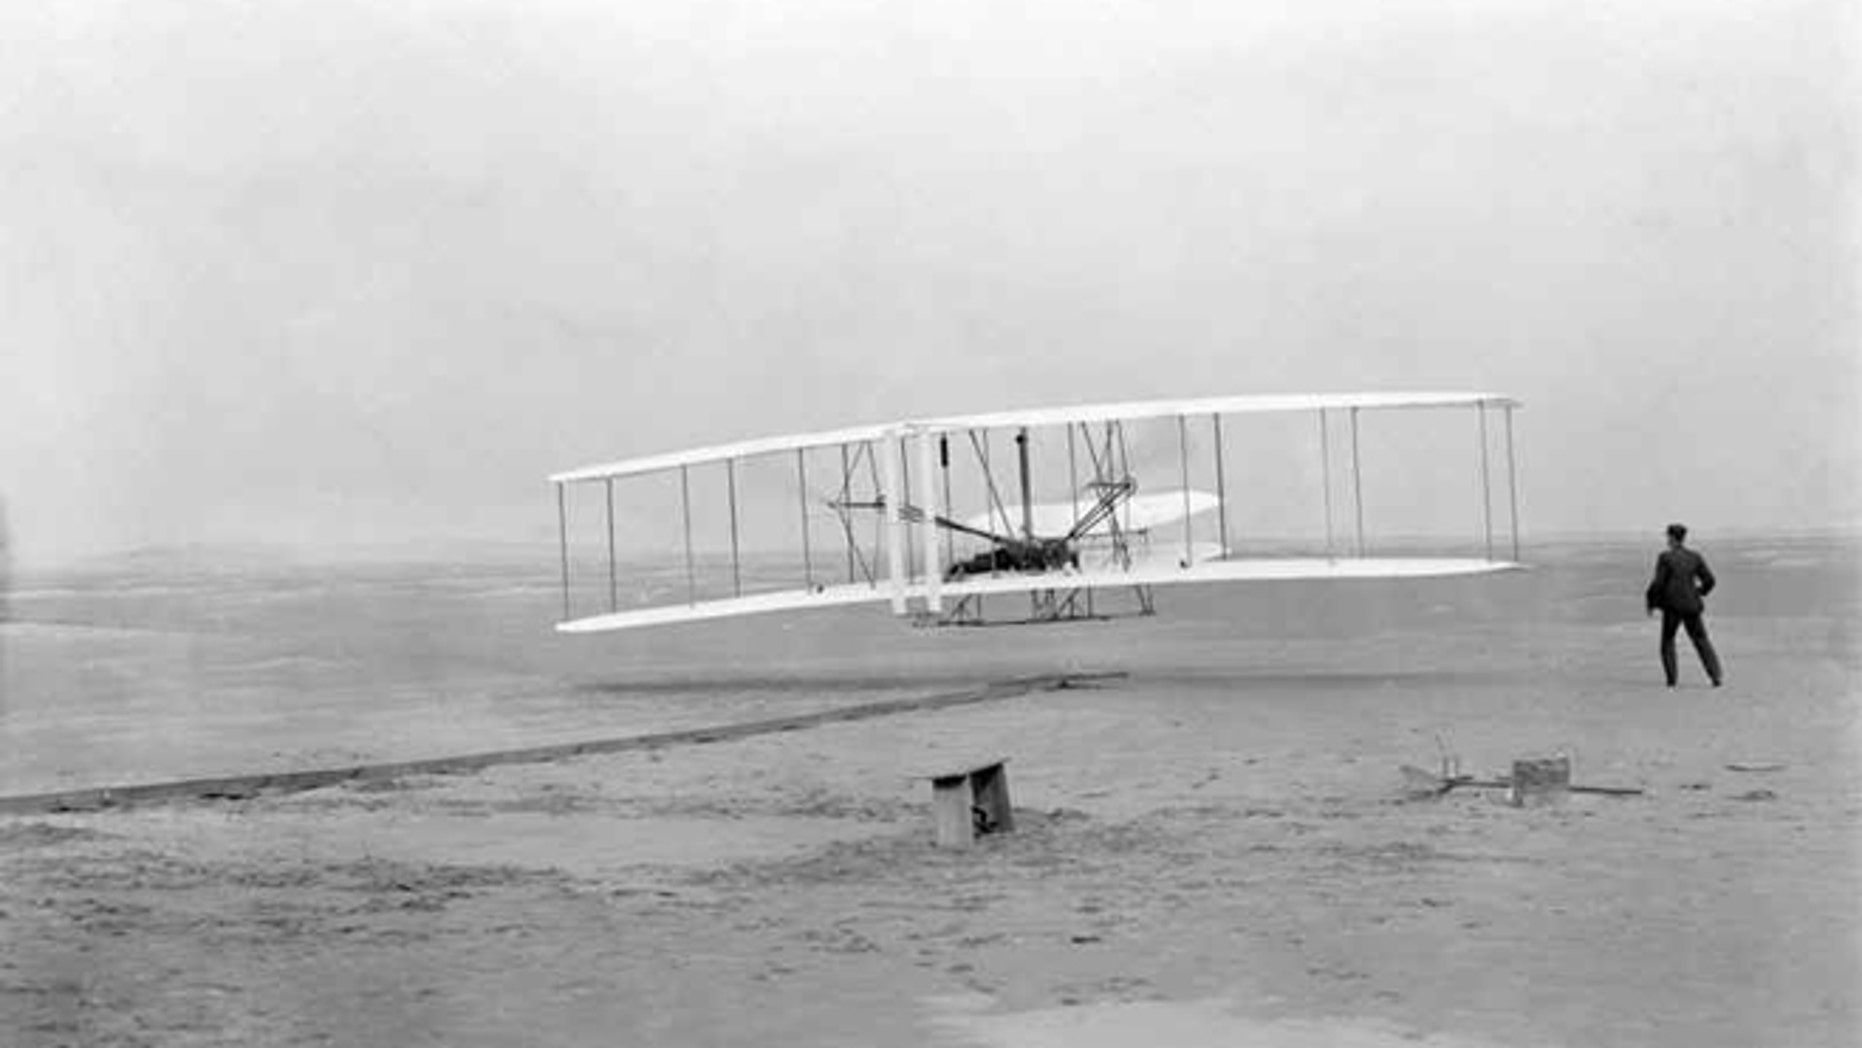 Dec. 17 1903: The first flight by Wright brothers Ovrville and Wilbur, at Kitty Hawk, North Carolina.